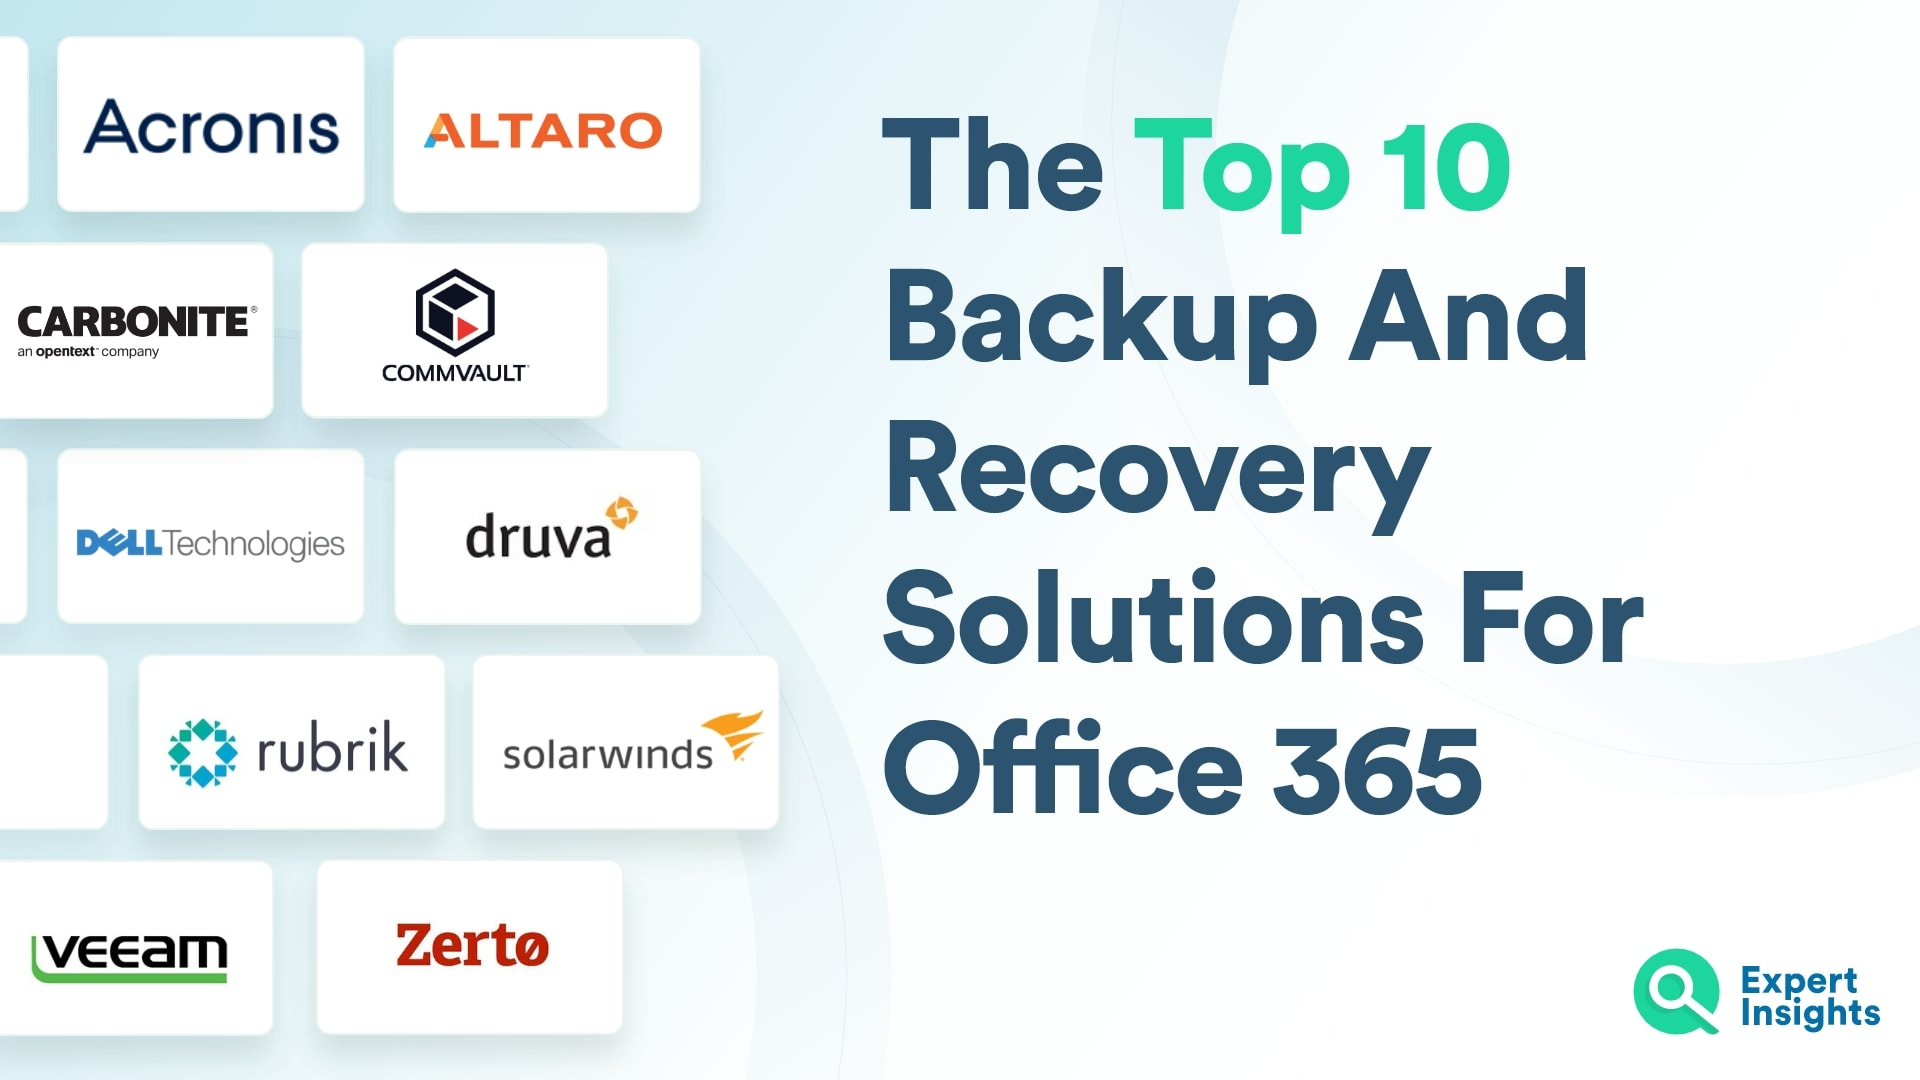 Top O365 Backup And Recovery Solutions - Expert Insights